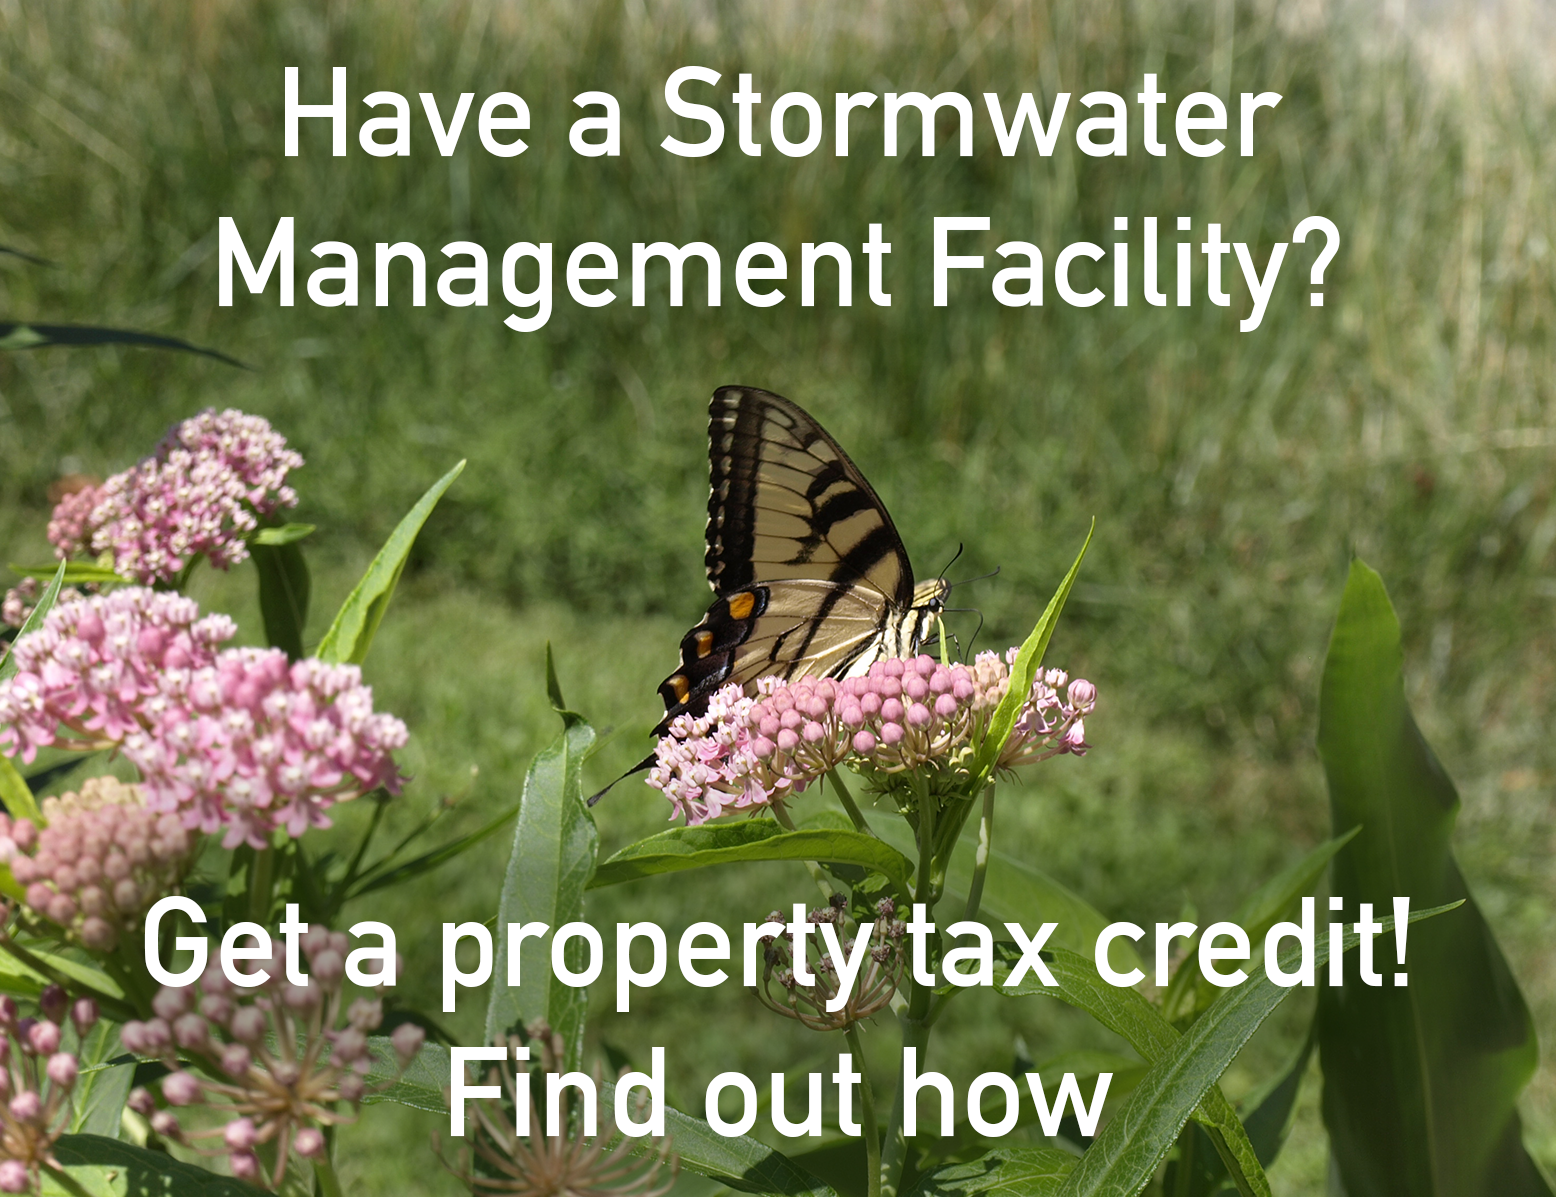 Butterfly on a stormwater management facility